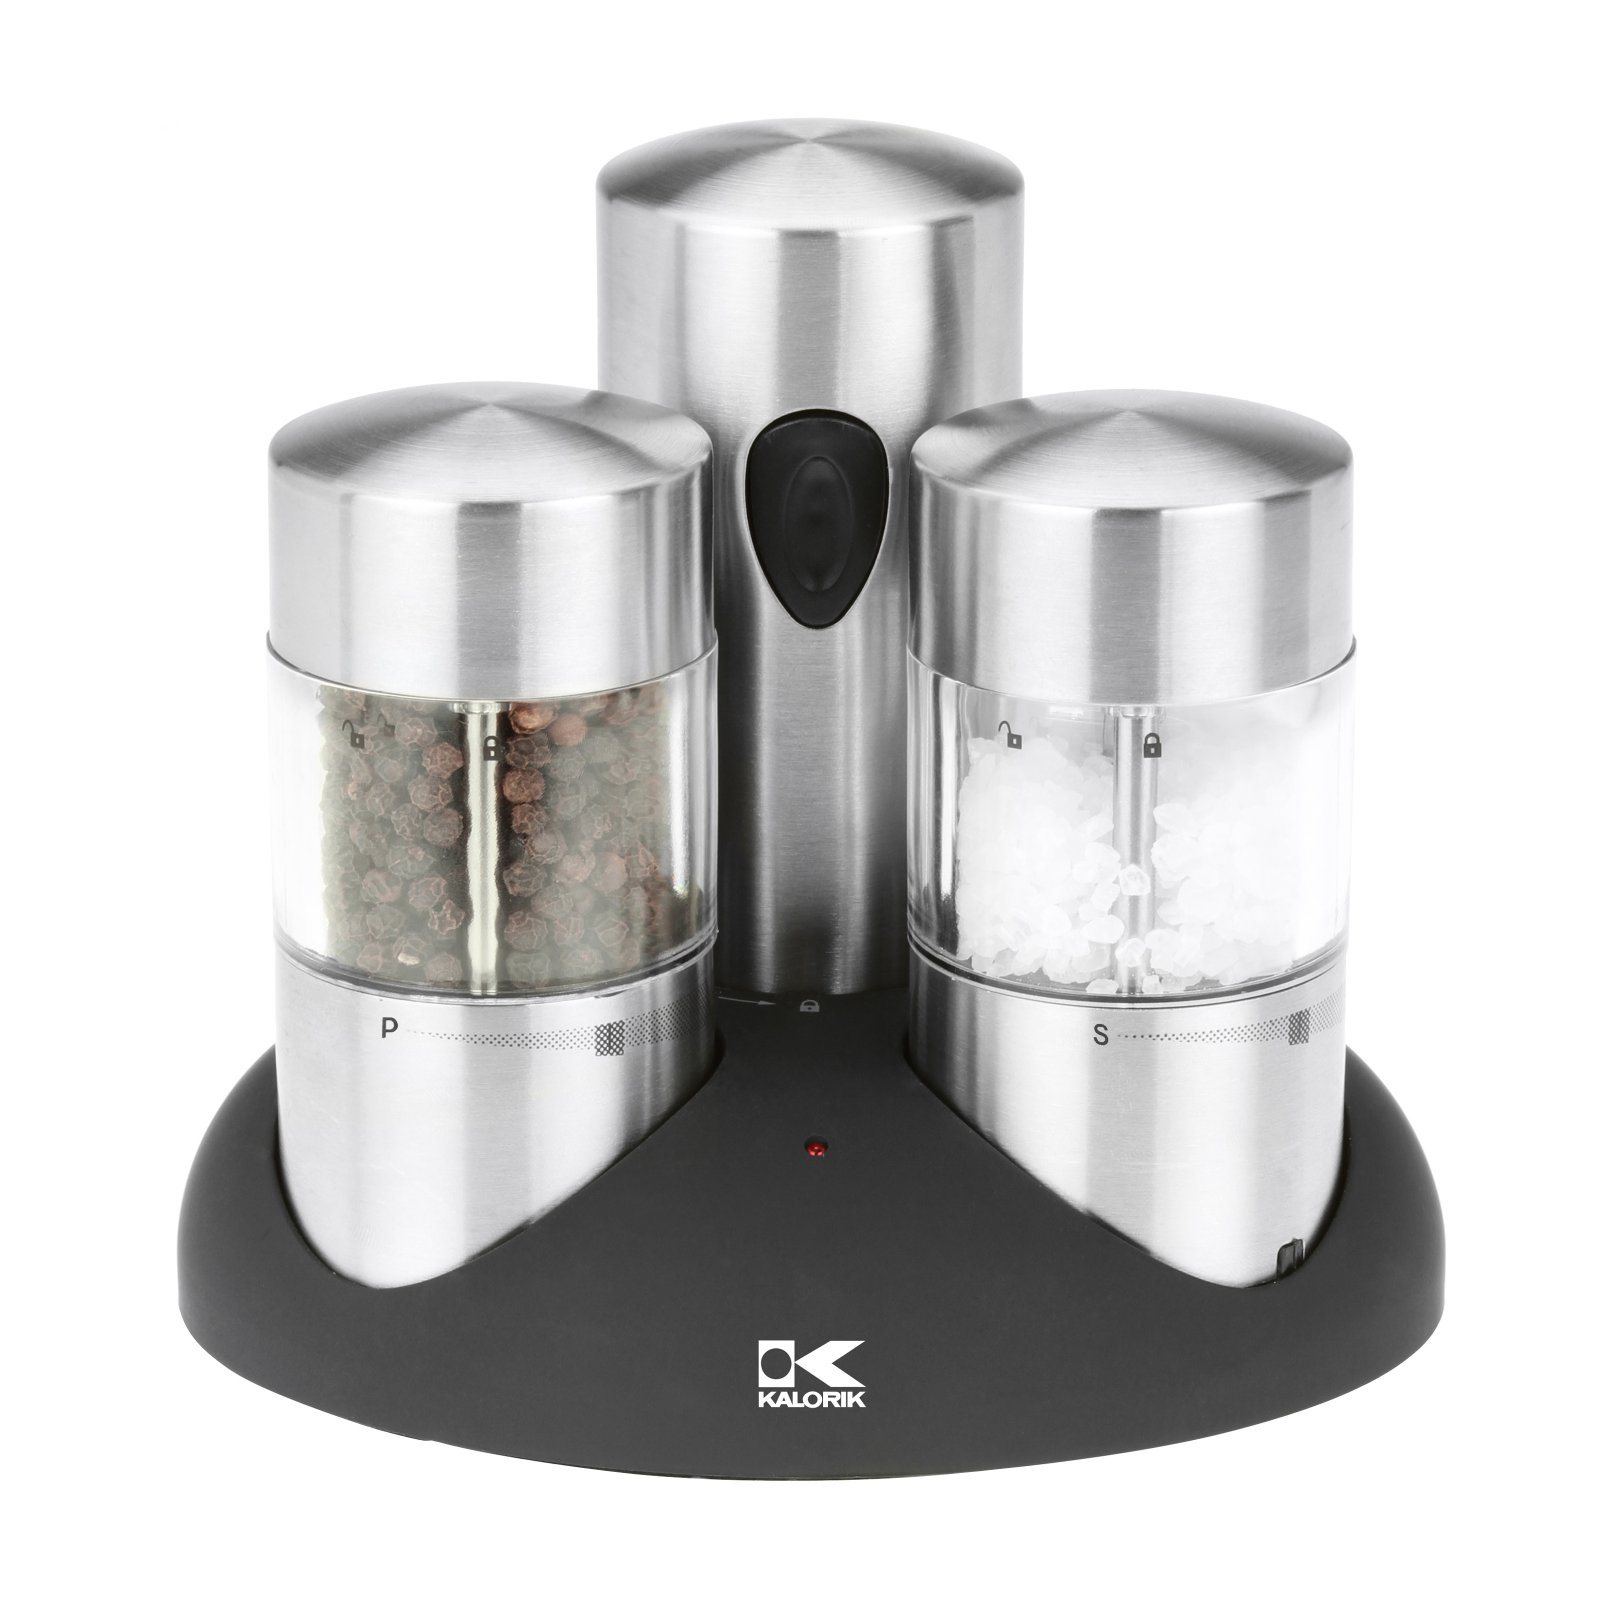 Kalorik Rechargeable Electric Stainless Steel Salt and Pepper Grinder Set by Generic